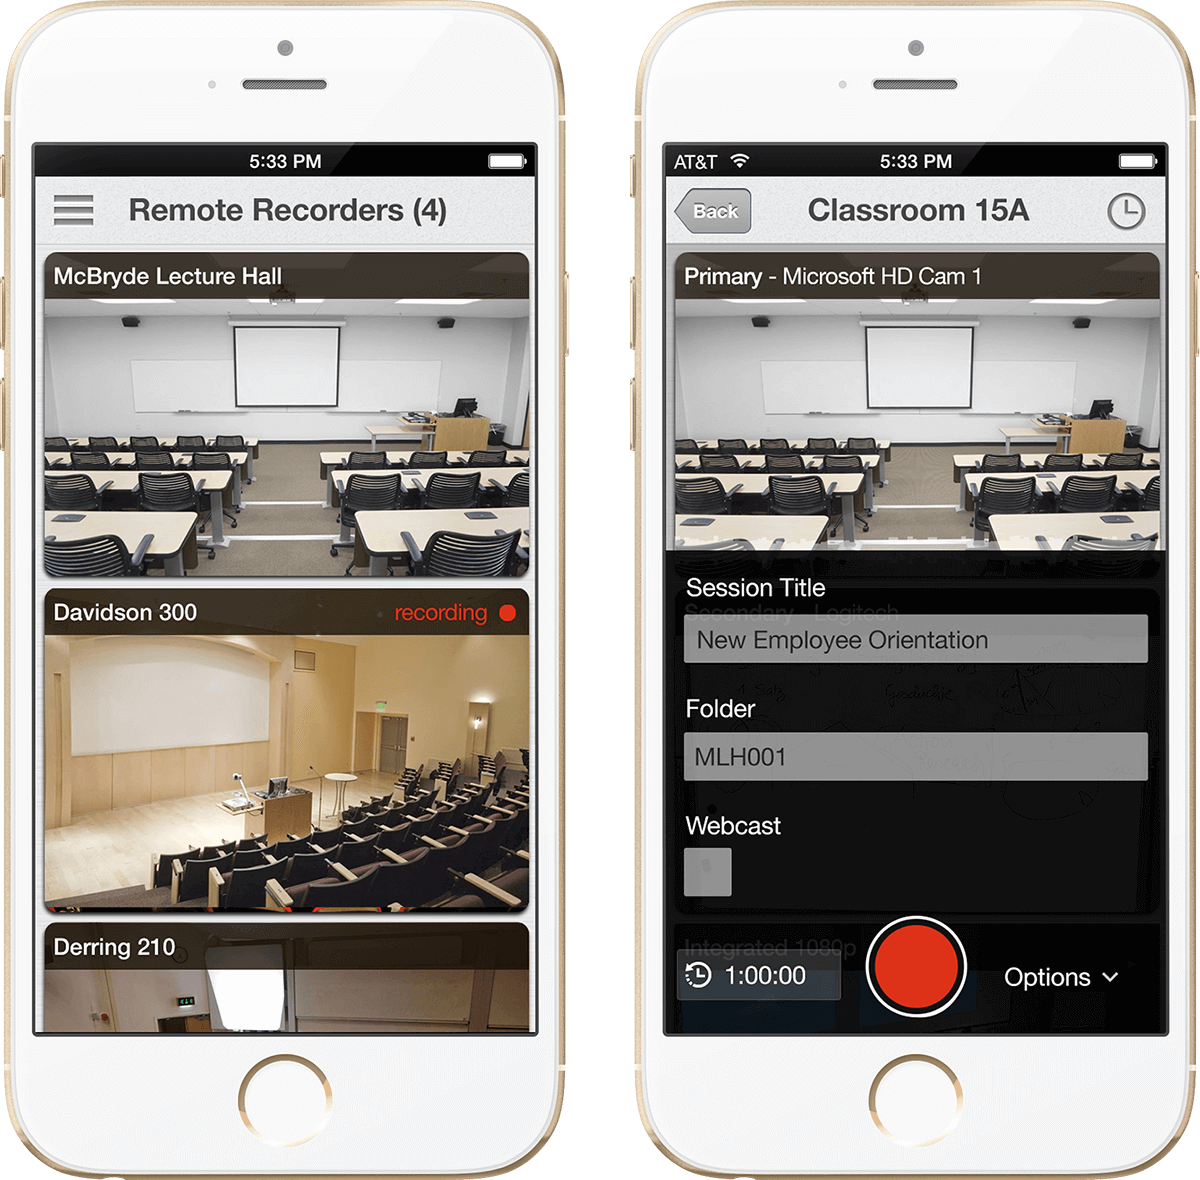 Use your mobile device as a remote control to manage video recording